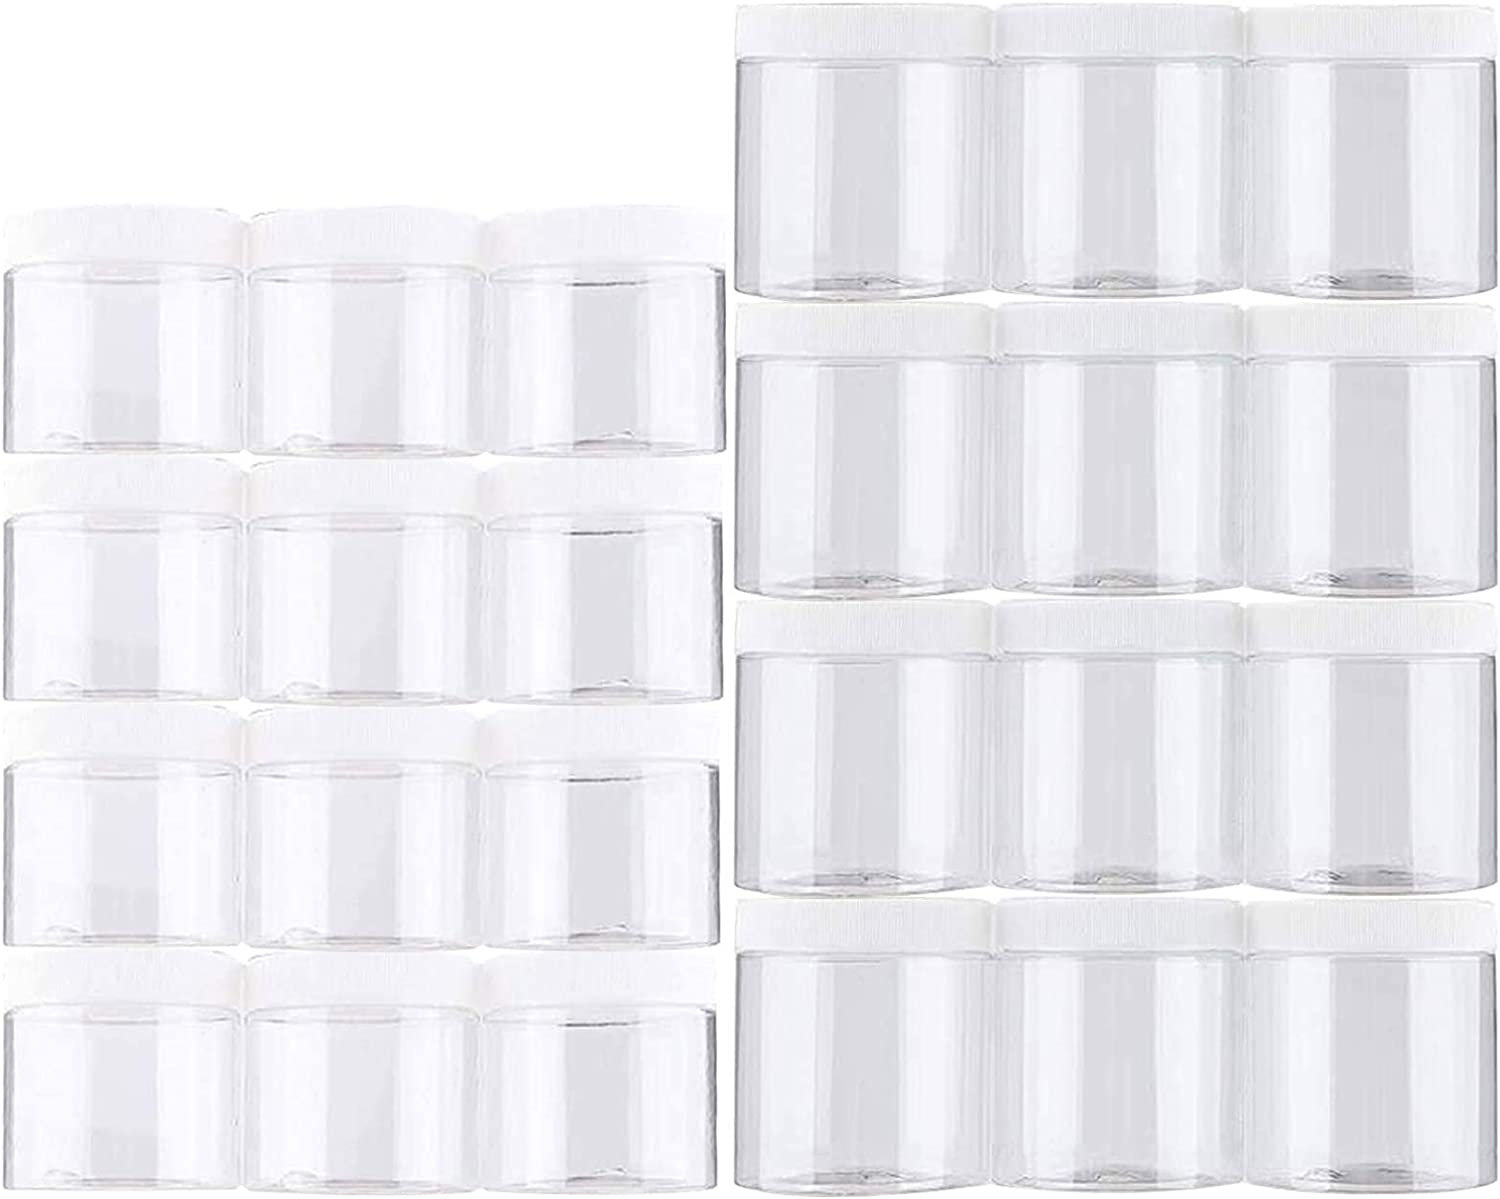 Habbi Slime Containers - 24 Pack Empty Slime Storage Jars 6 OZ. & 8 OZ. Clear Plastic Food Storage Jars with White Lids for DIY Slime Making, BPA Free